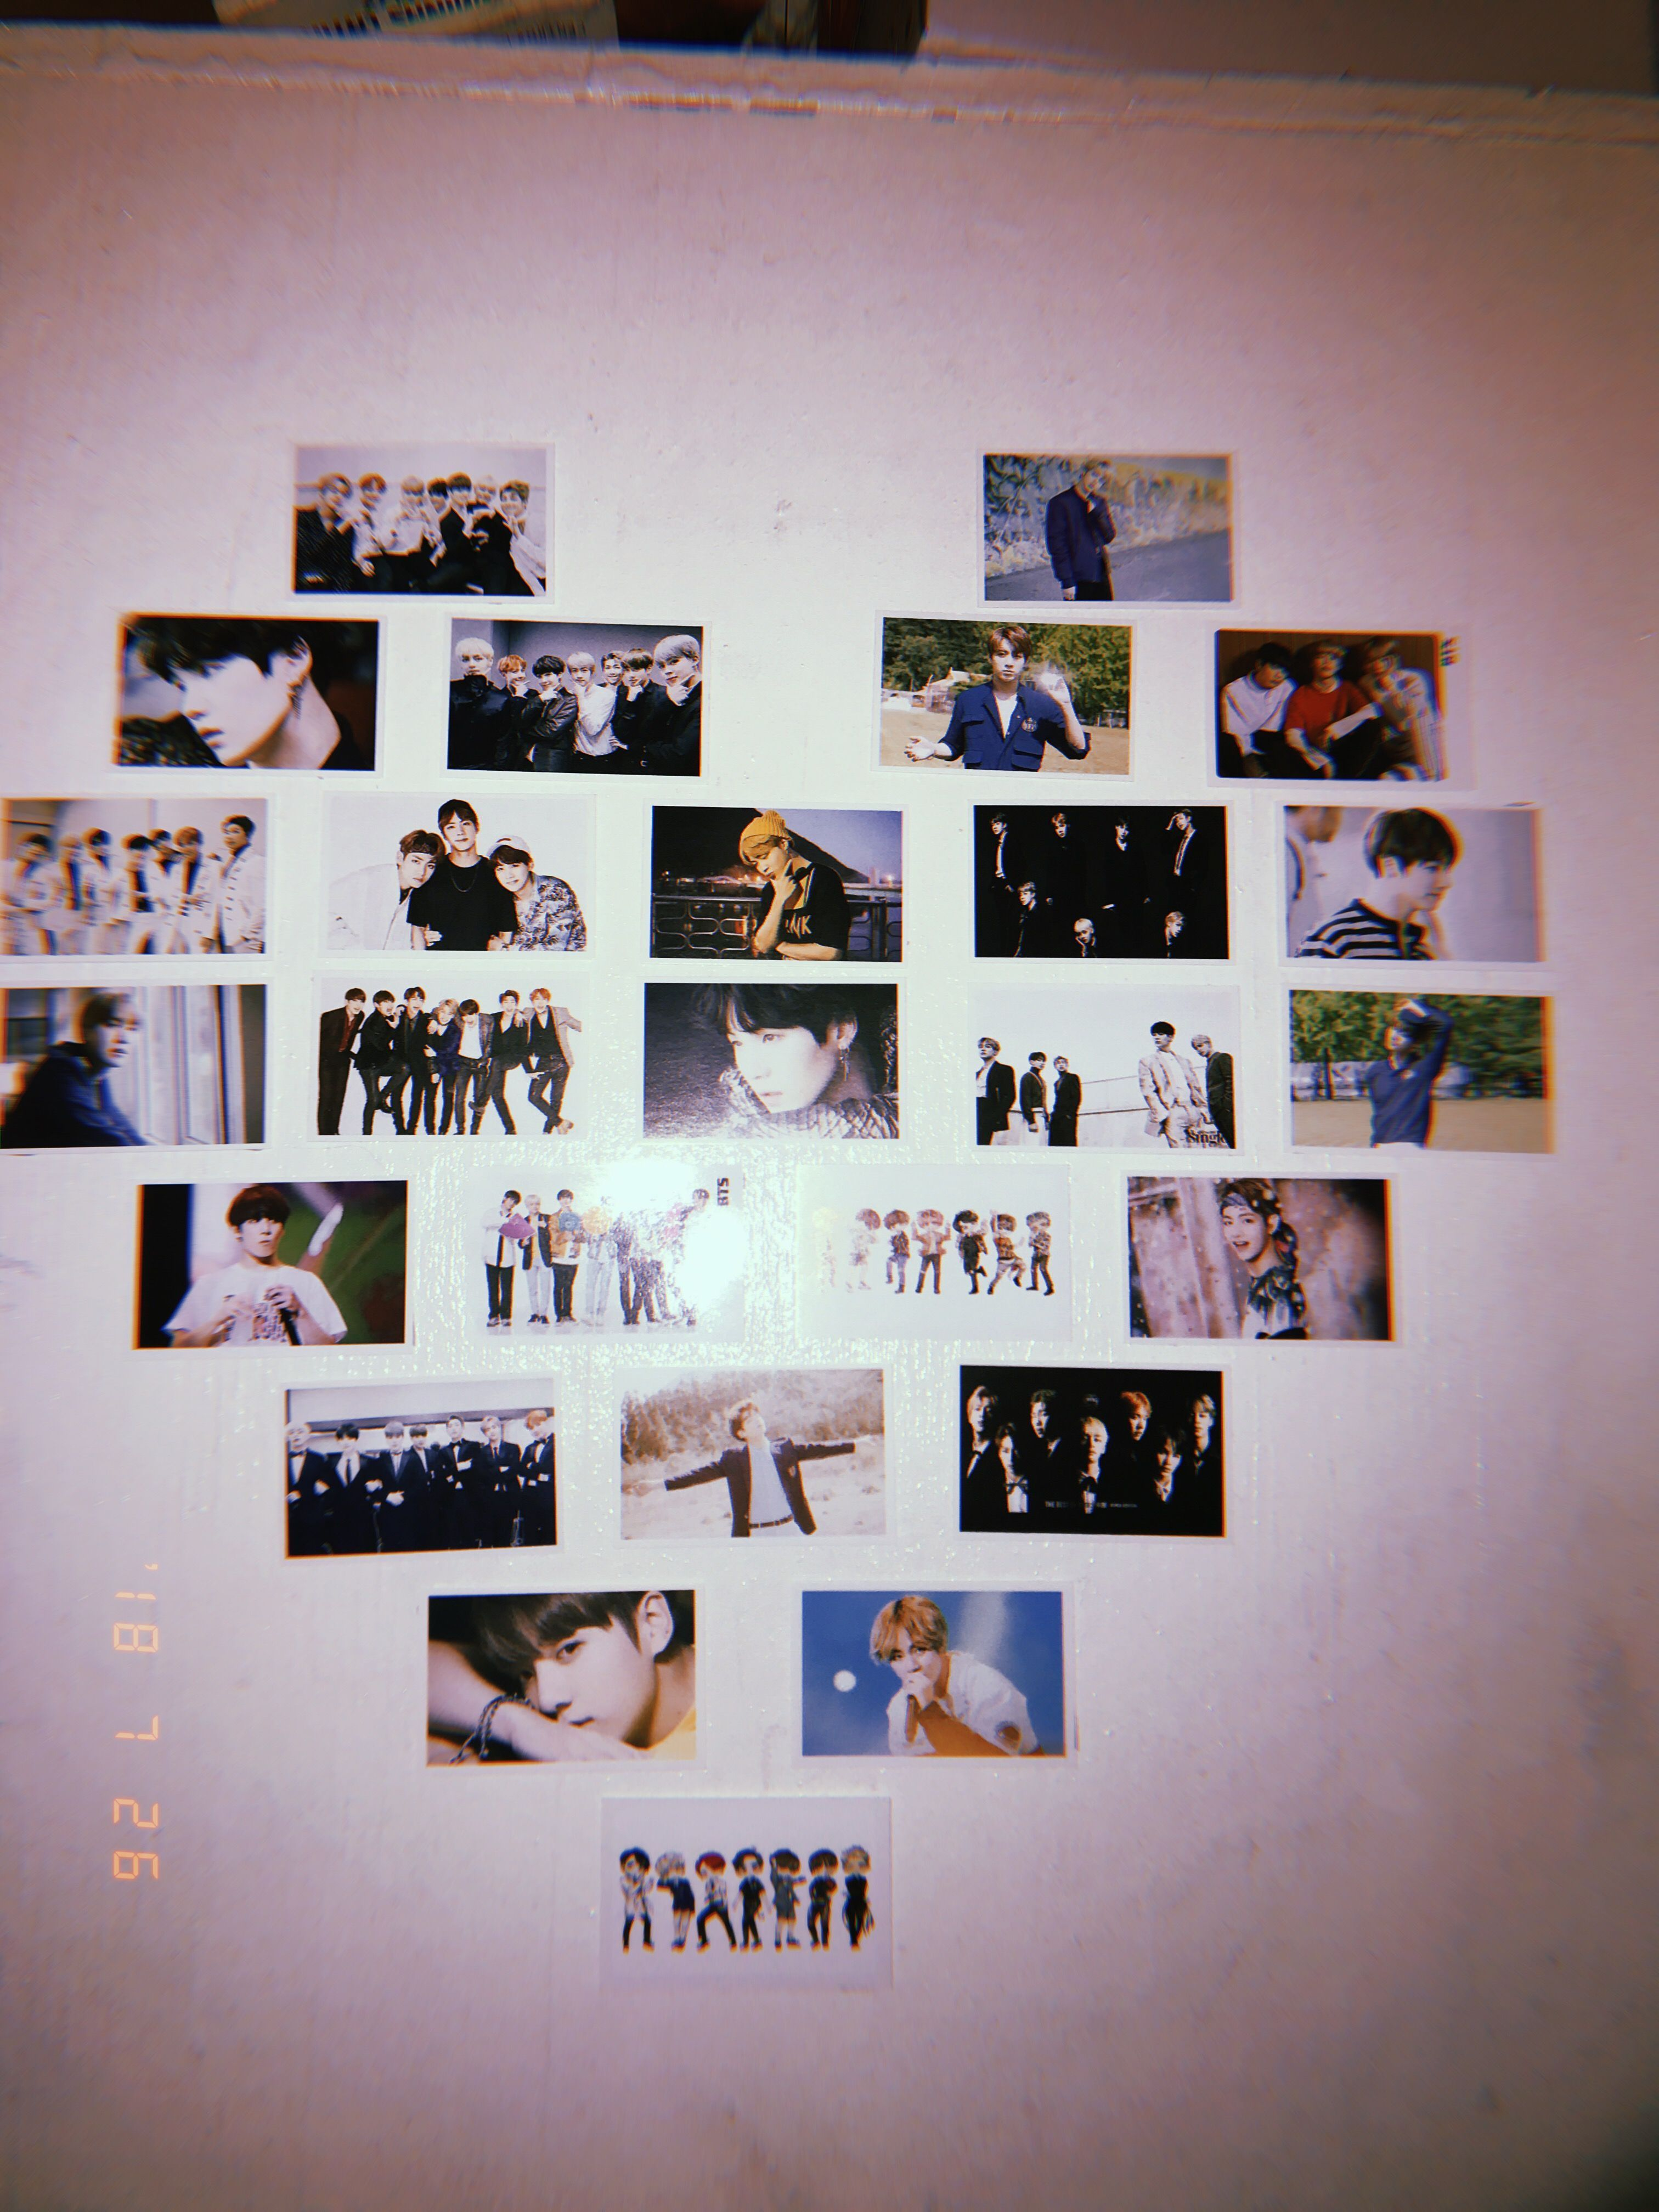 Bts Room Wall Google Search Google Search Army Room Decor Army Room Decor